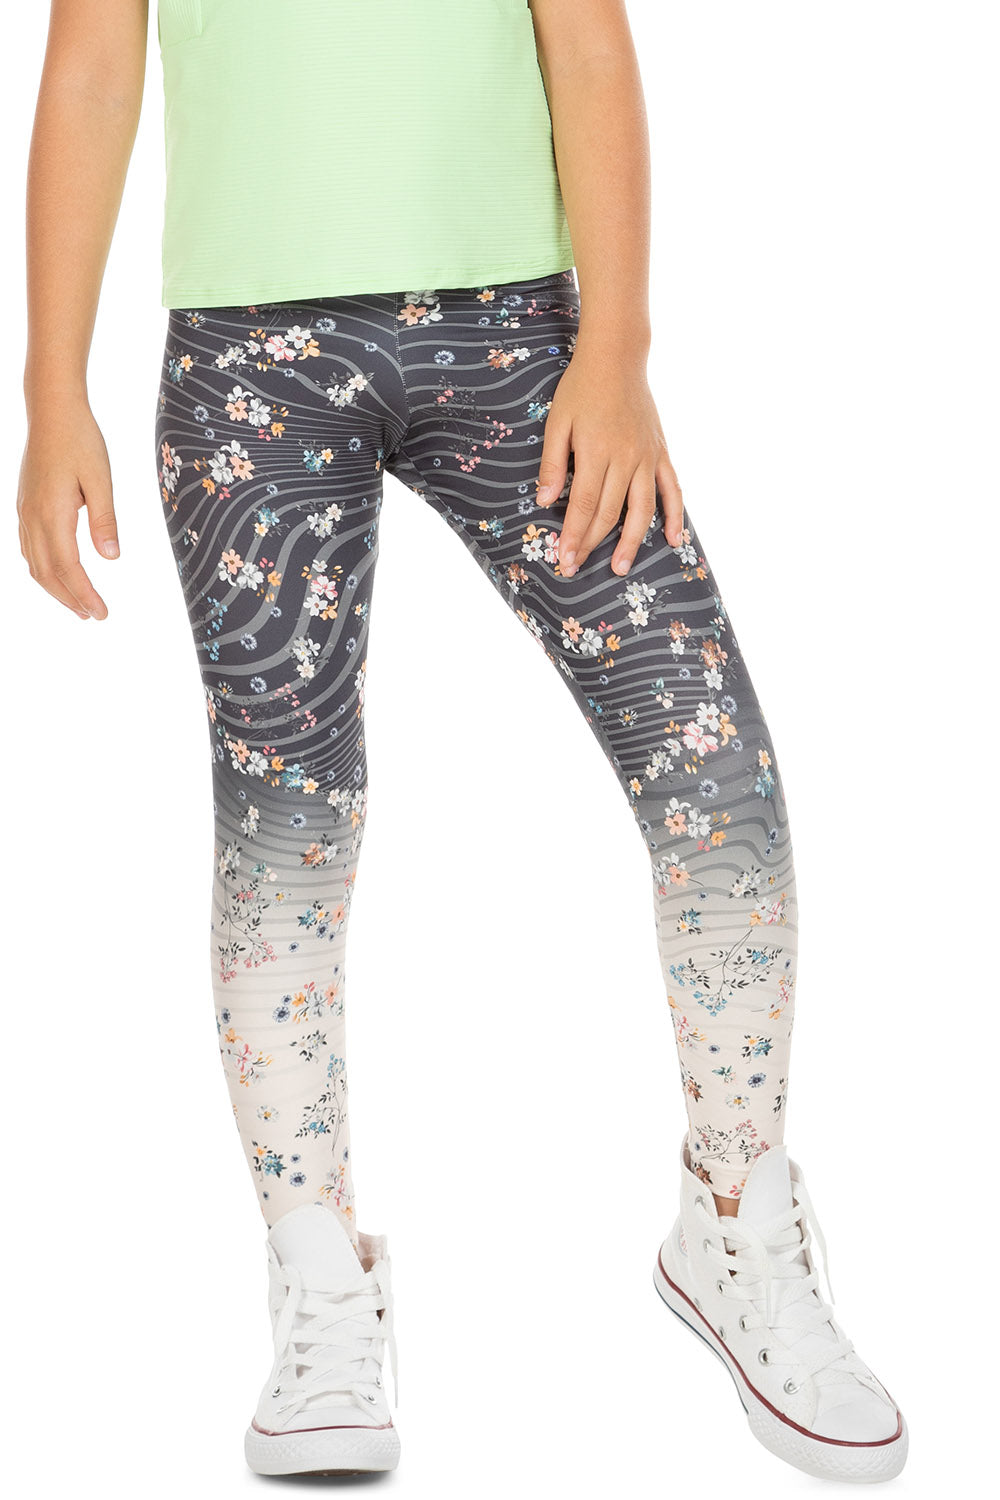 Liberty Lines Kids Legging 1